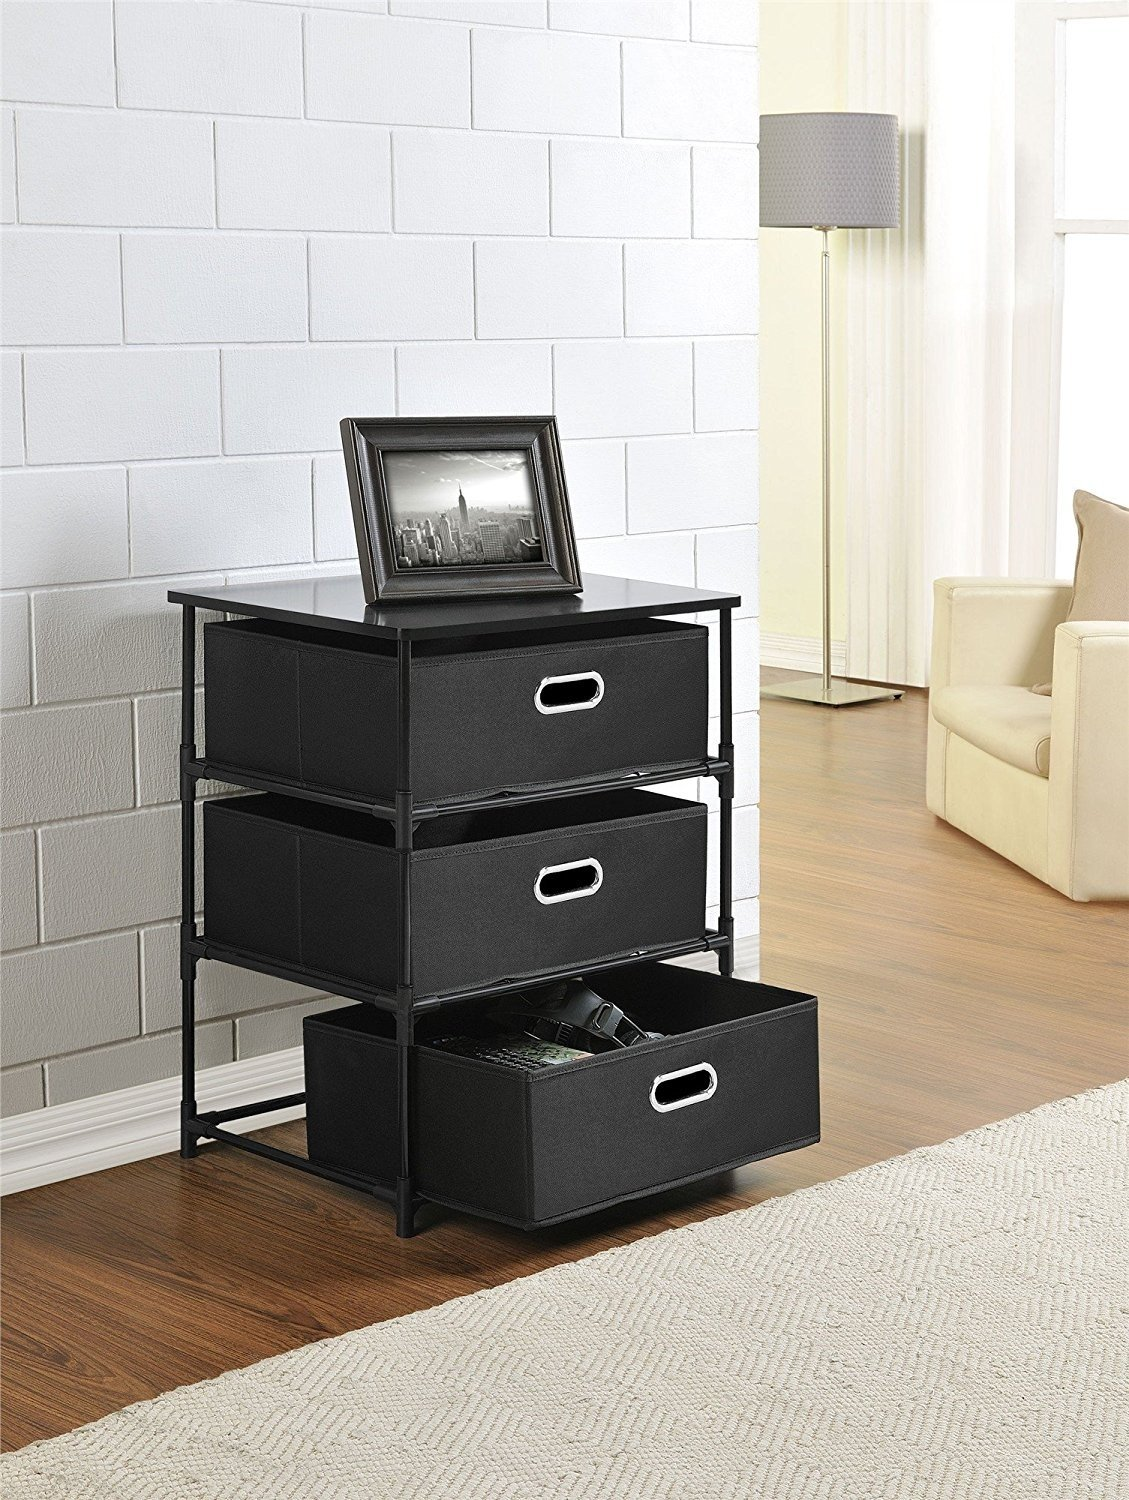 Indoor Multi-function Accent table Study Computer Desk Bedroom Living Room Modern Style End Table Sofa Side Table Coffee Table Three-Layer Storage Box